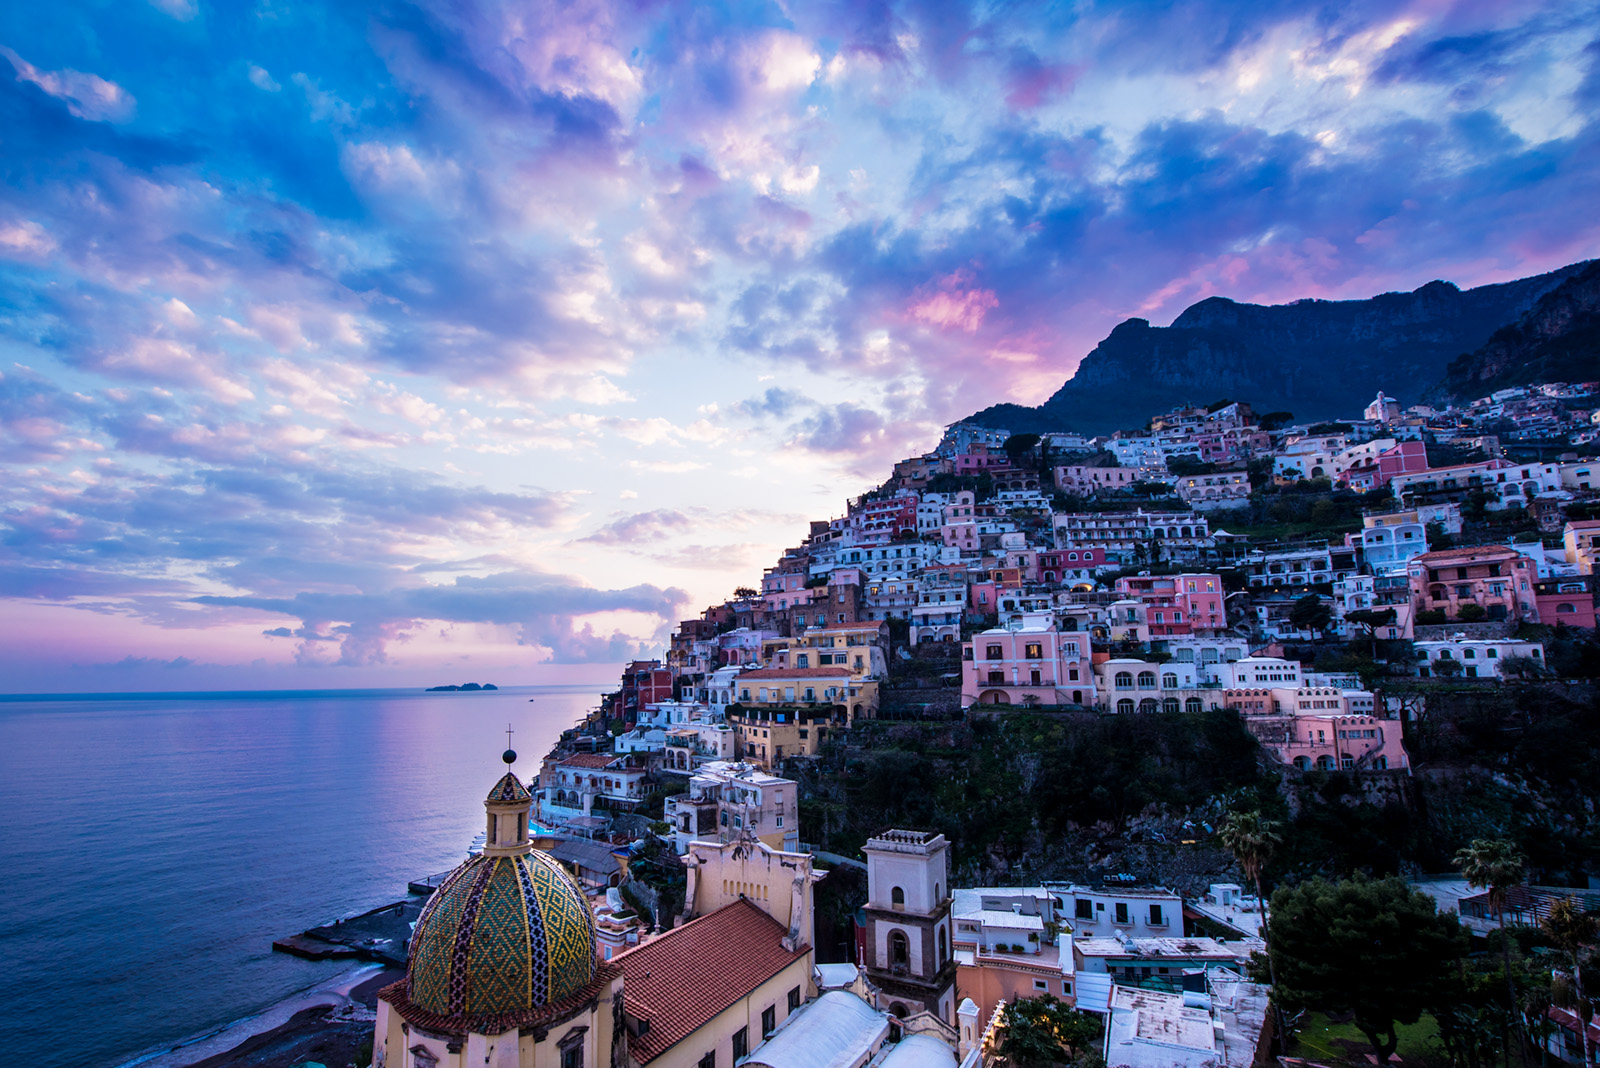 The classic perspective of Positano.